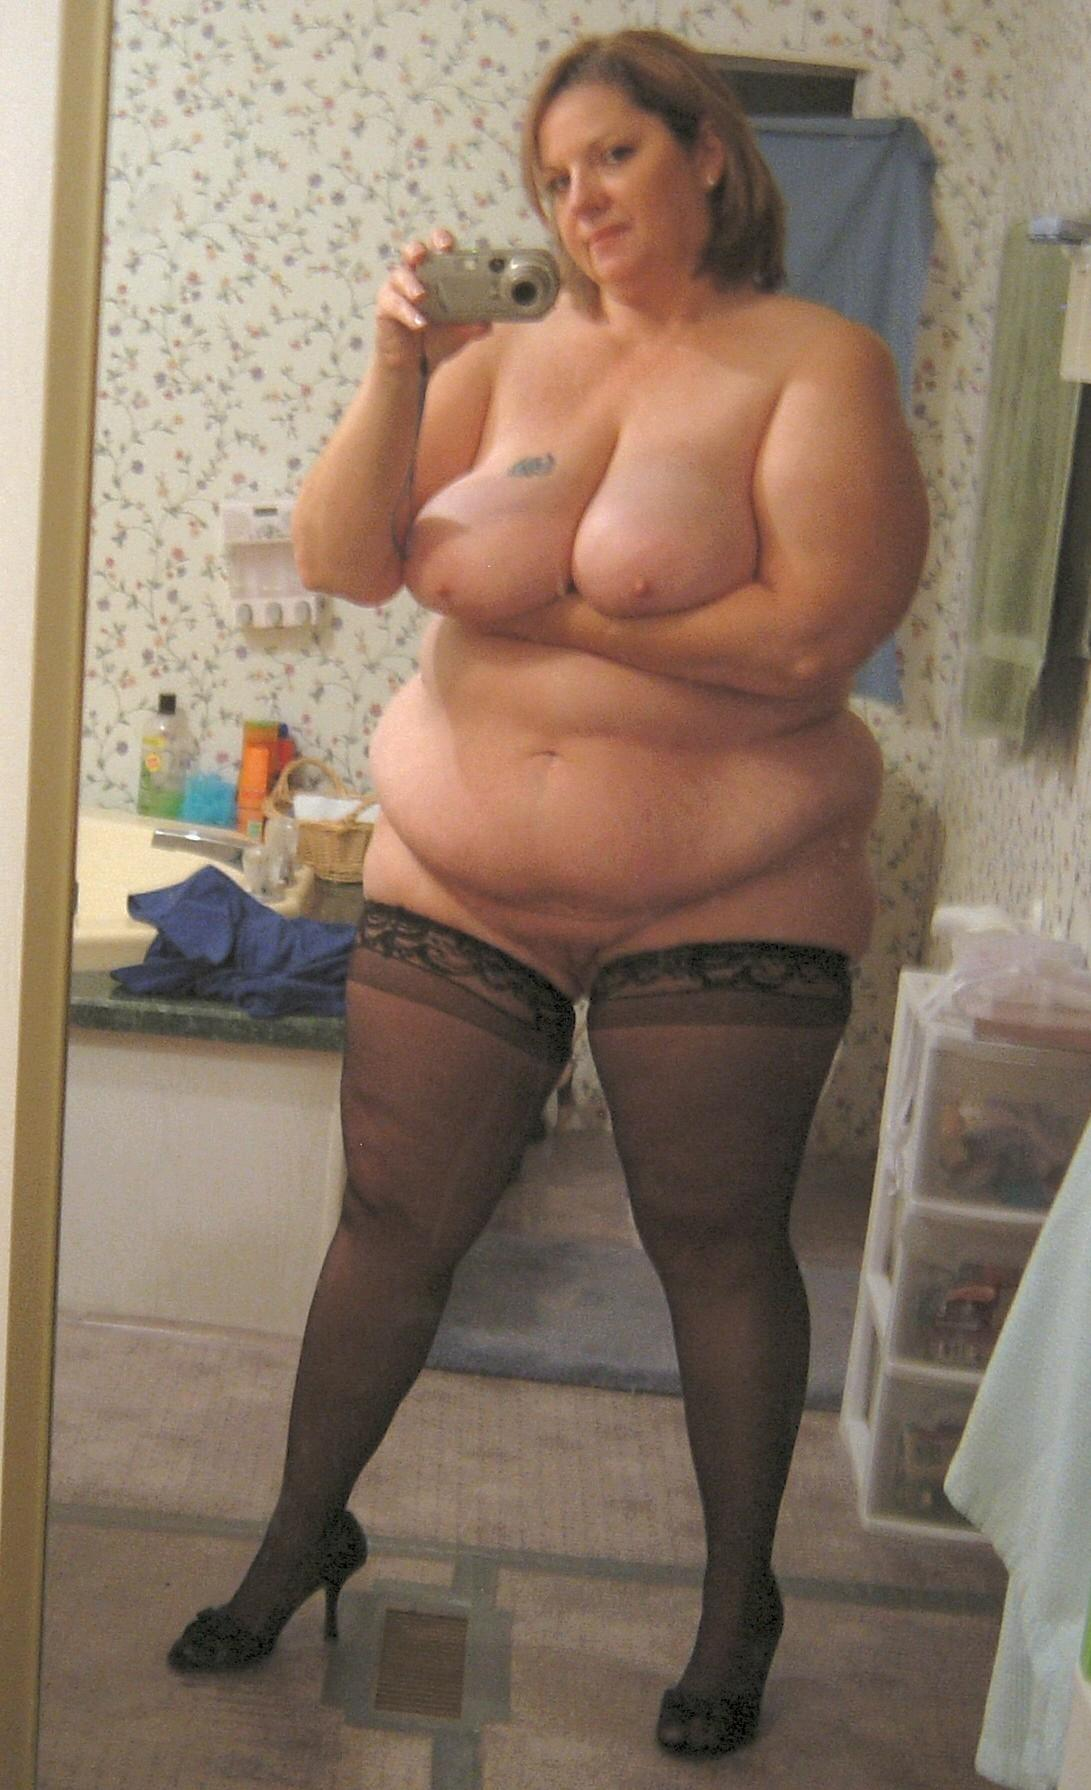 Chubby wife just adorable and smoking hot! BBW wife loves to pose and show off her massive tits!